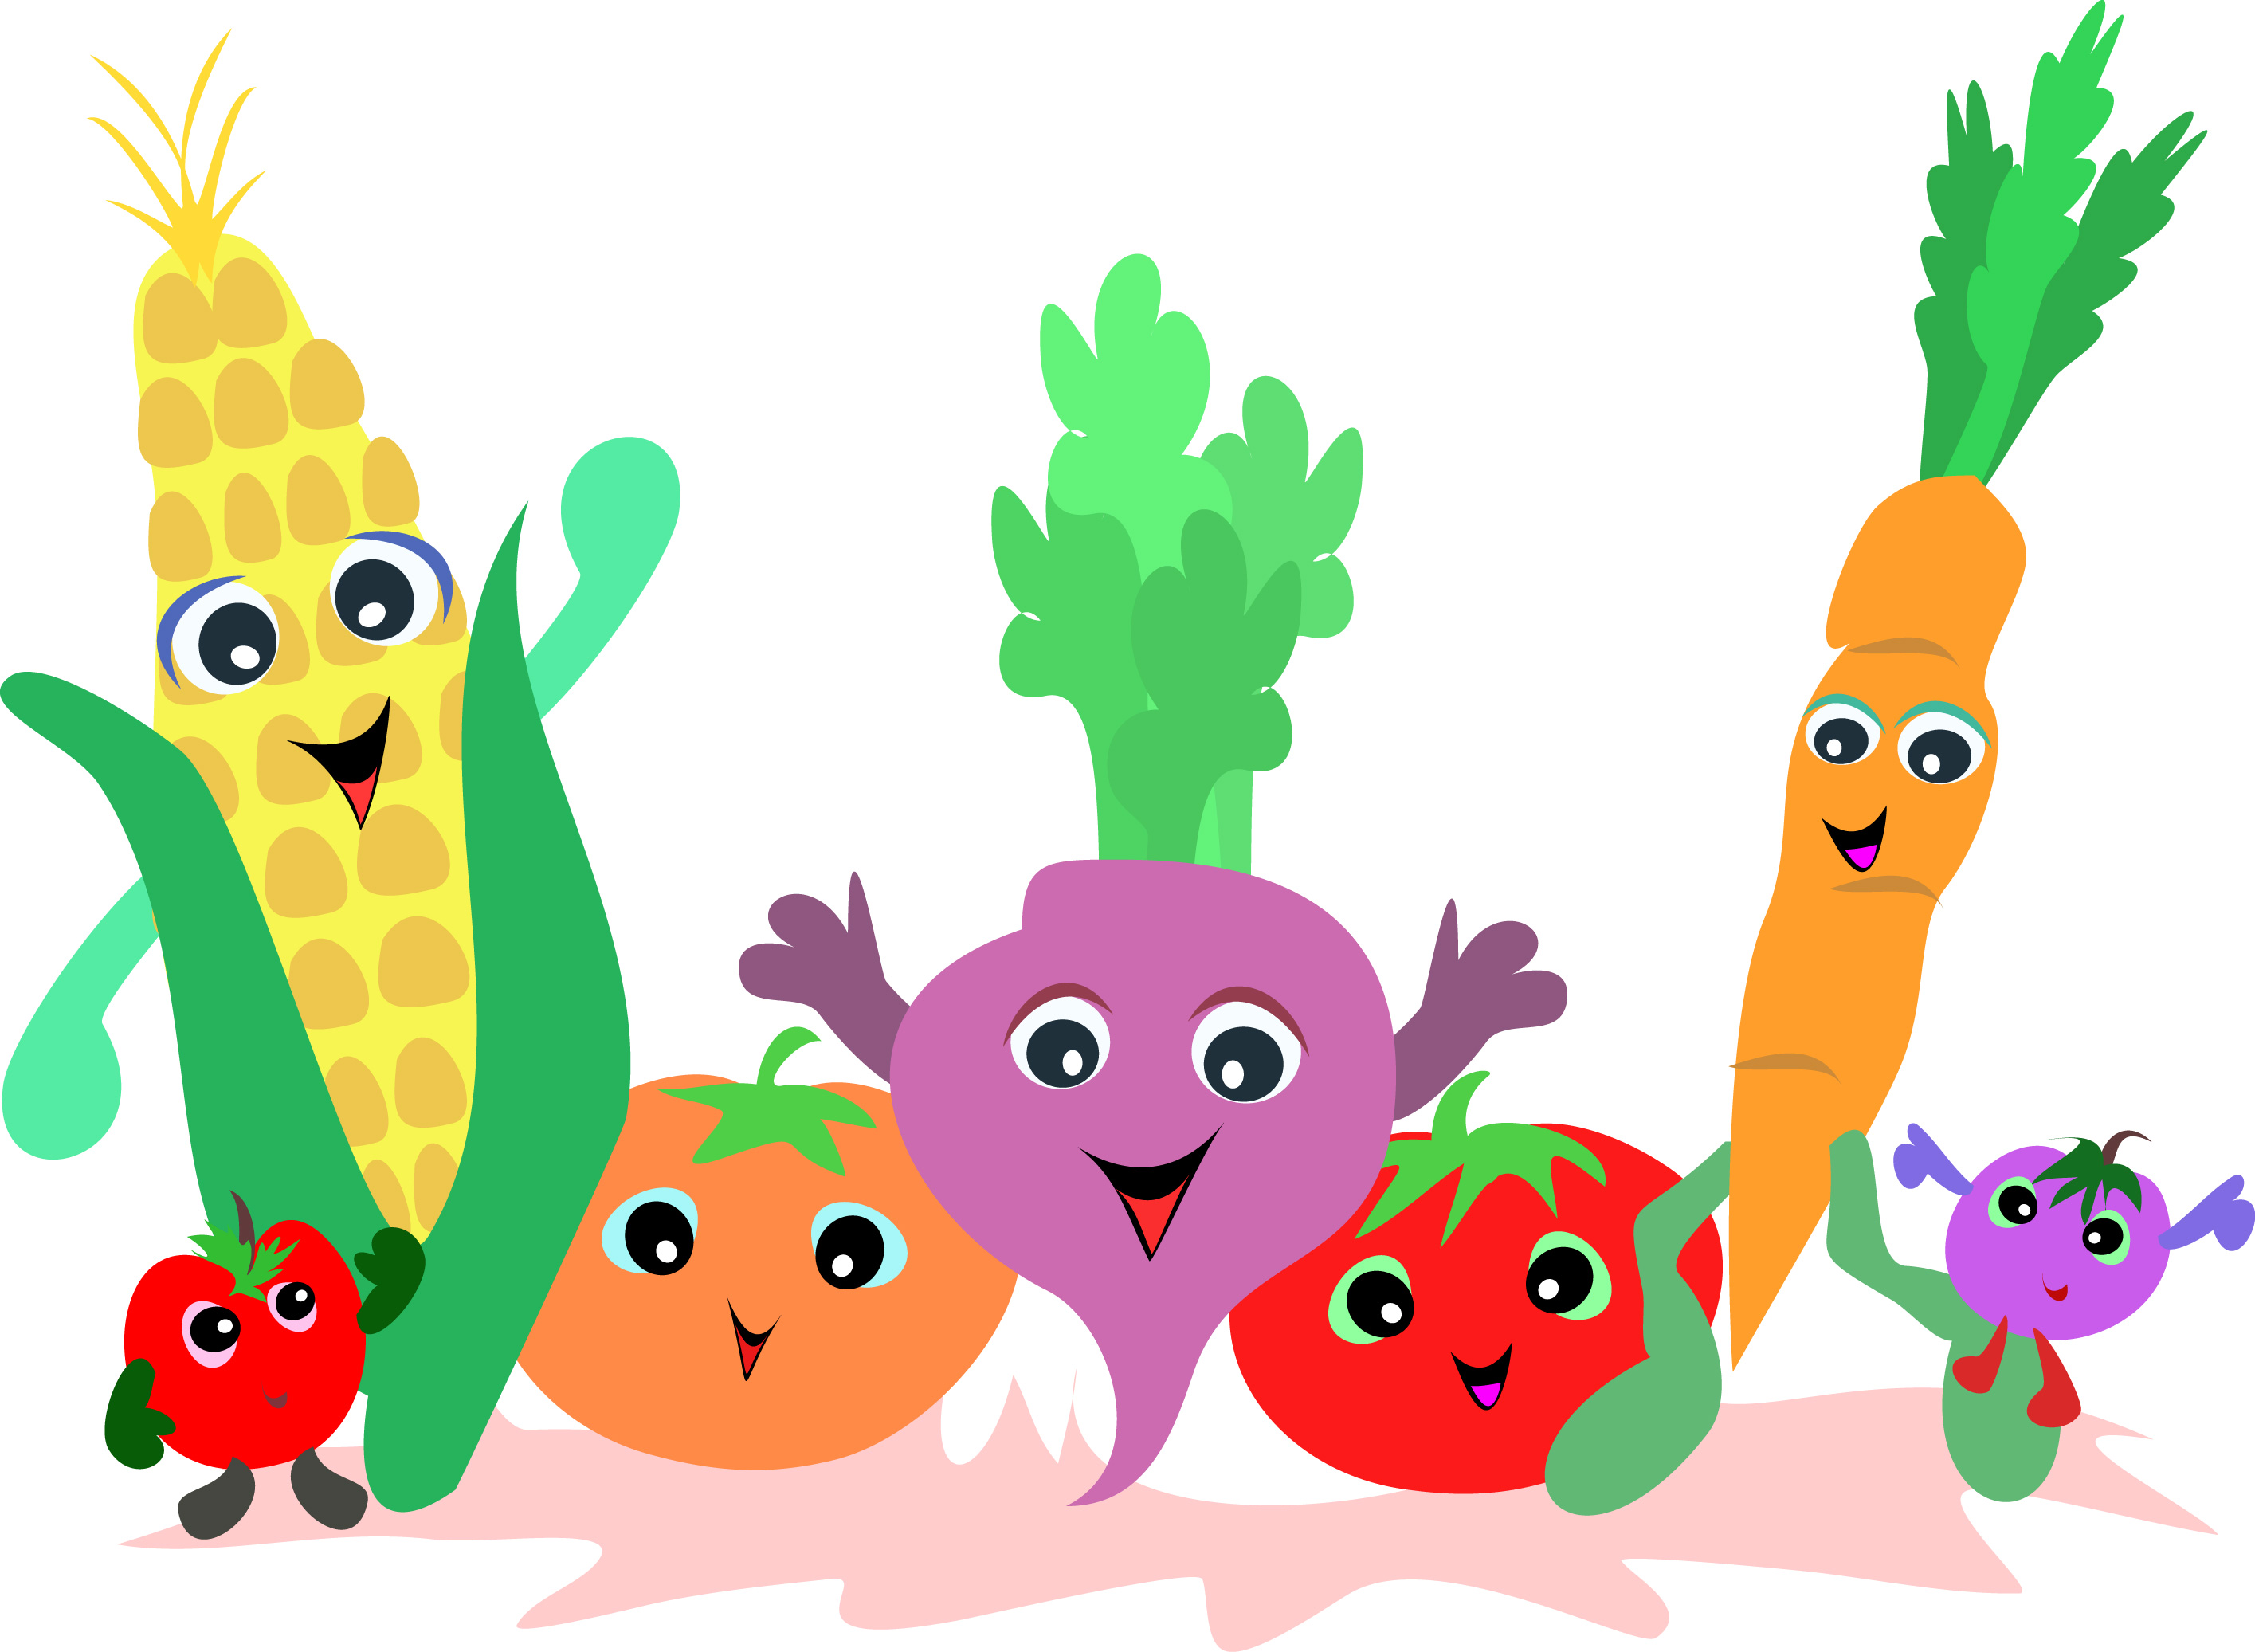 2830x2073 Shining Design Vegetables Clipart Panda Free Images Vegetable Clip